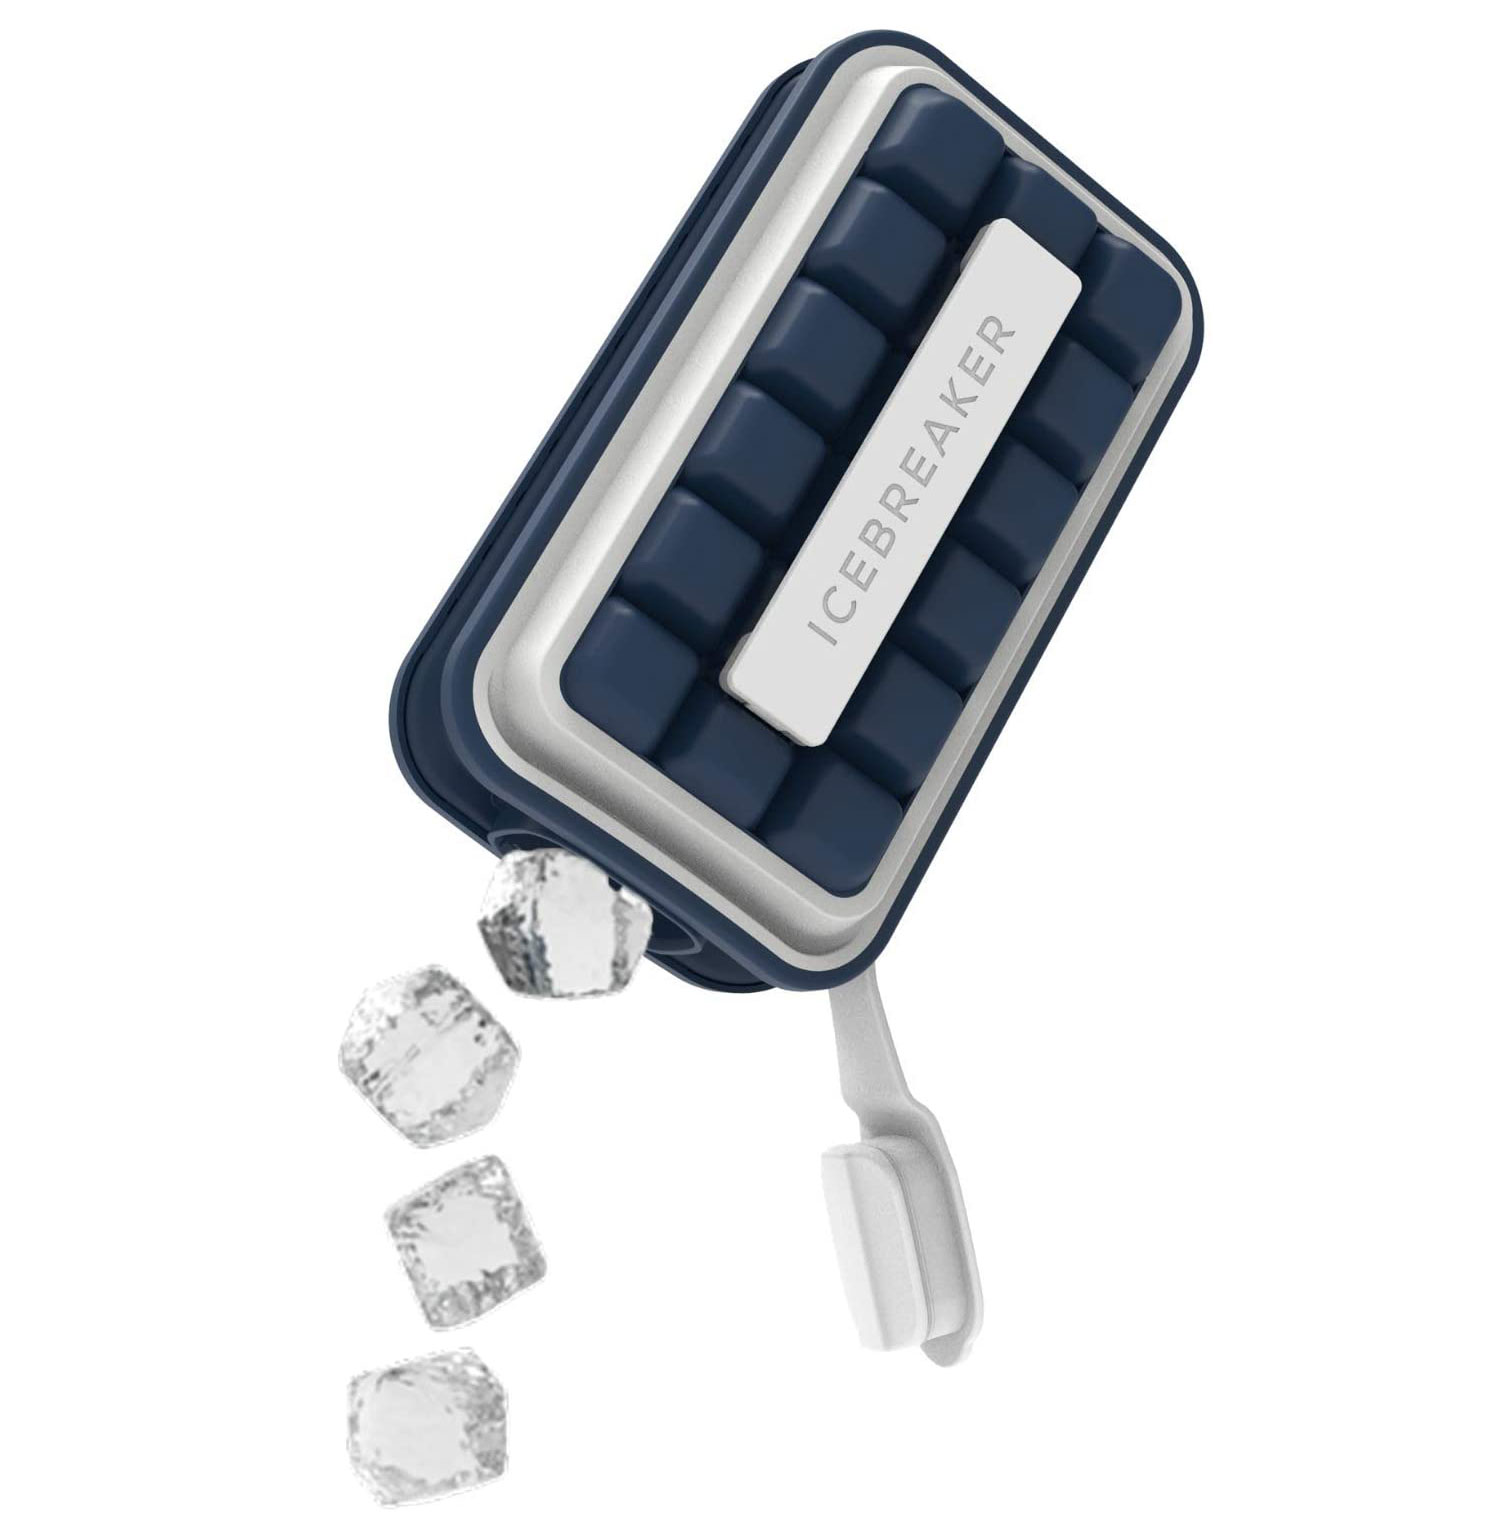 6 Clever Items (10/16/20) - Icebreaker Pop Ice Cube Tray & Server